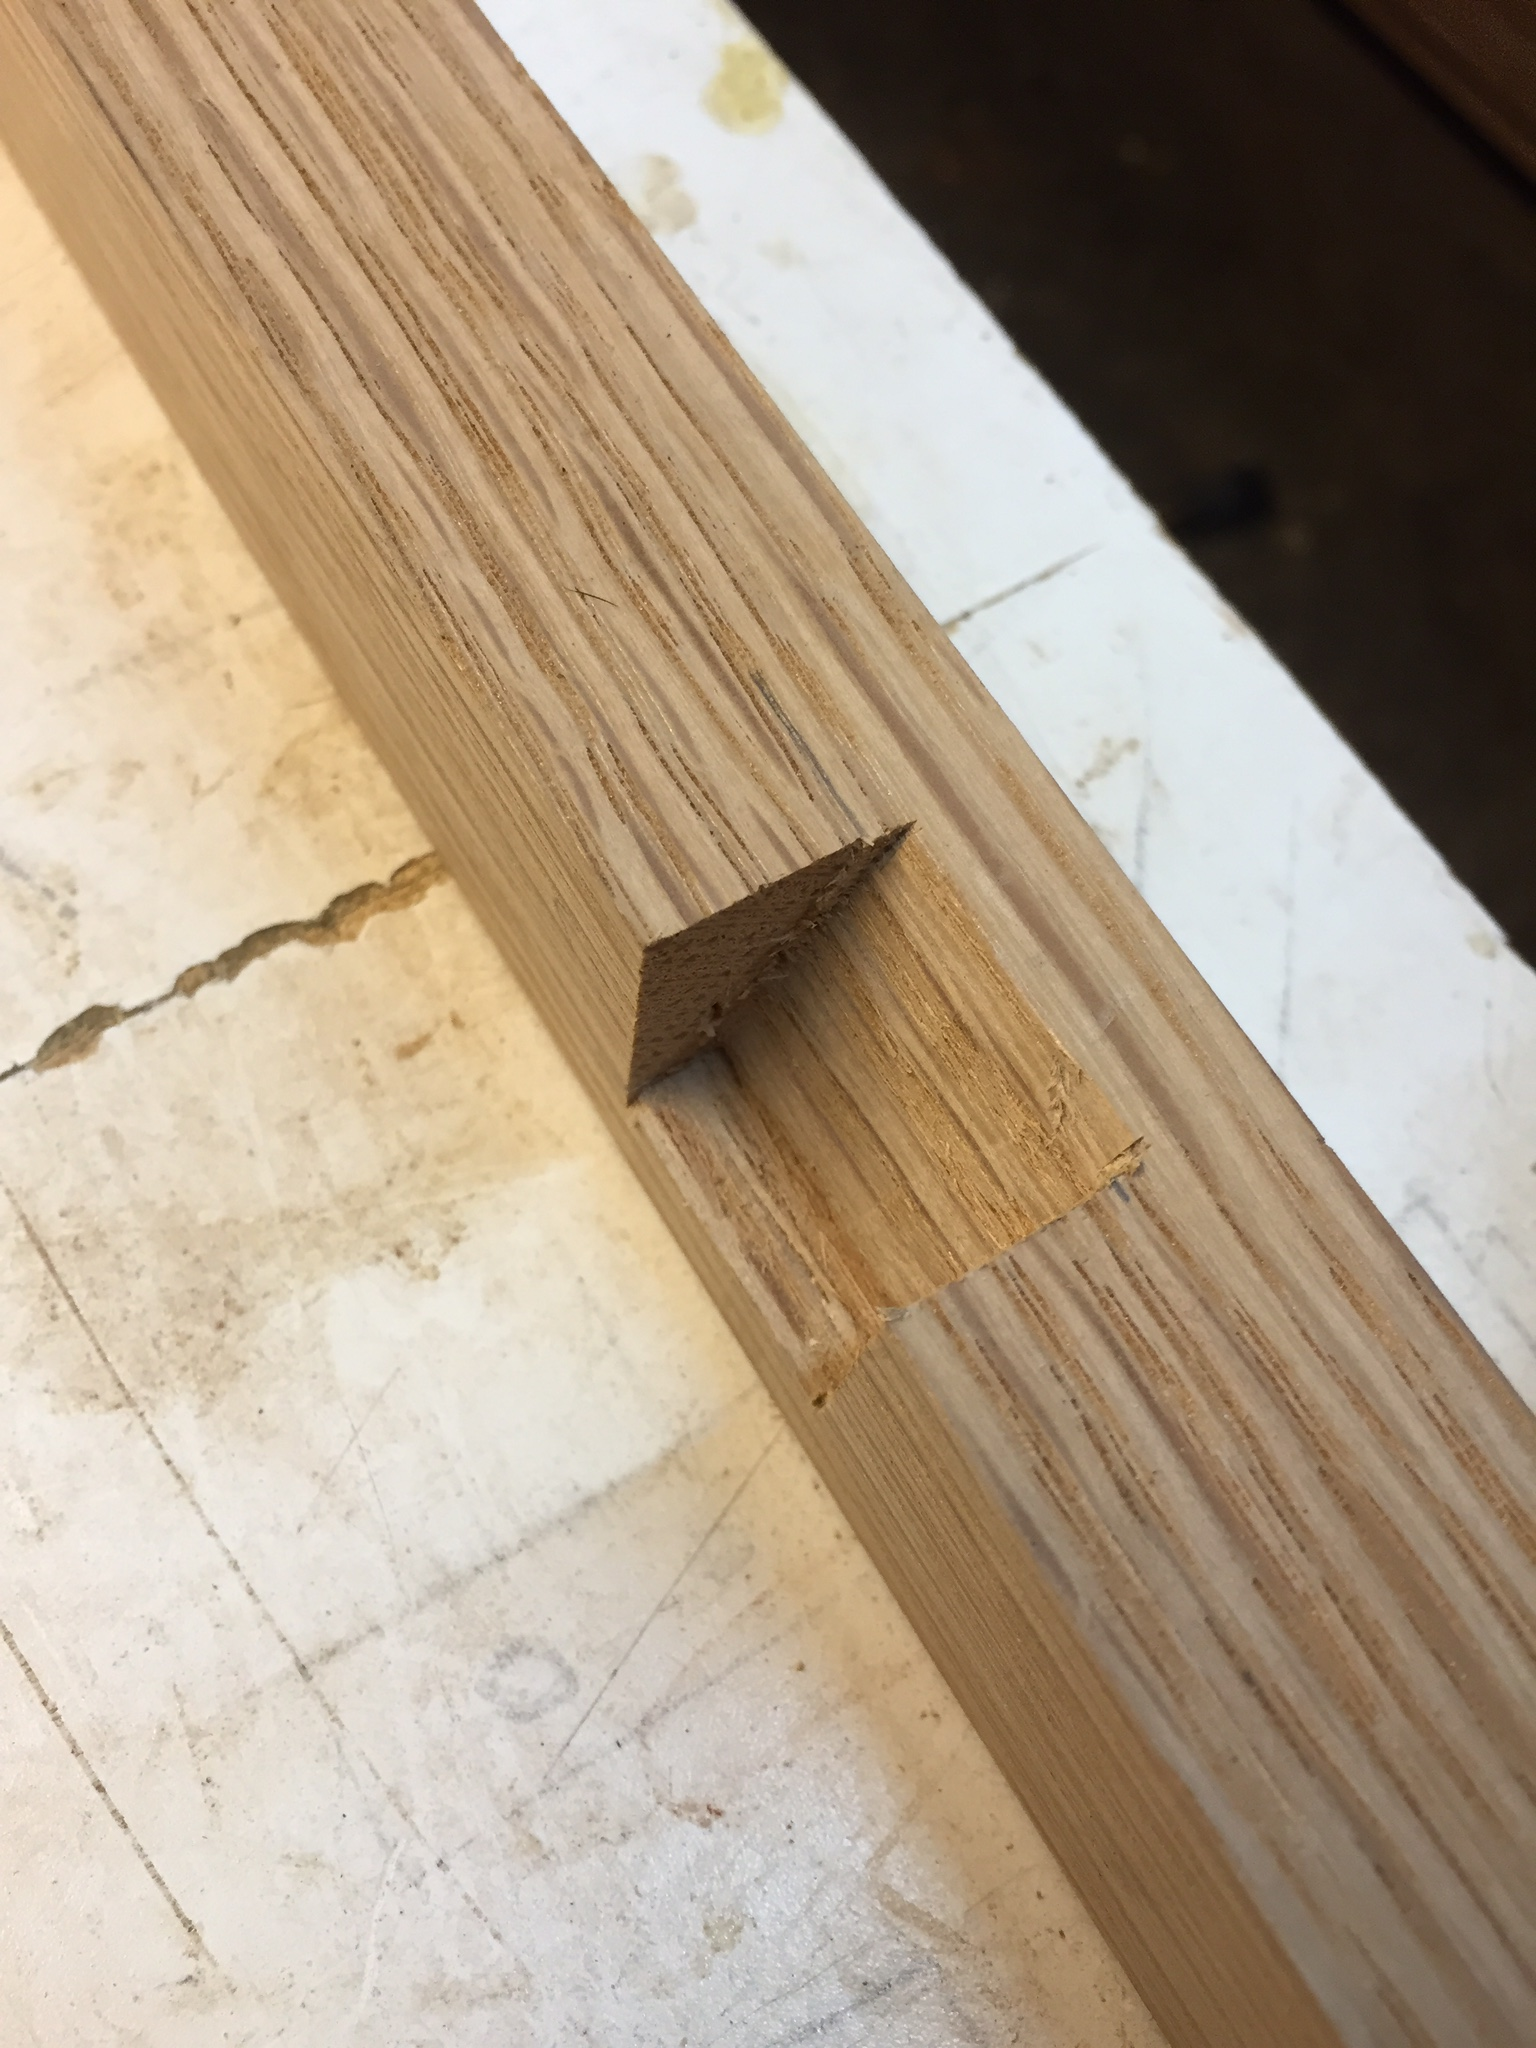 notch cut to accept frame head